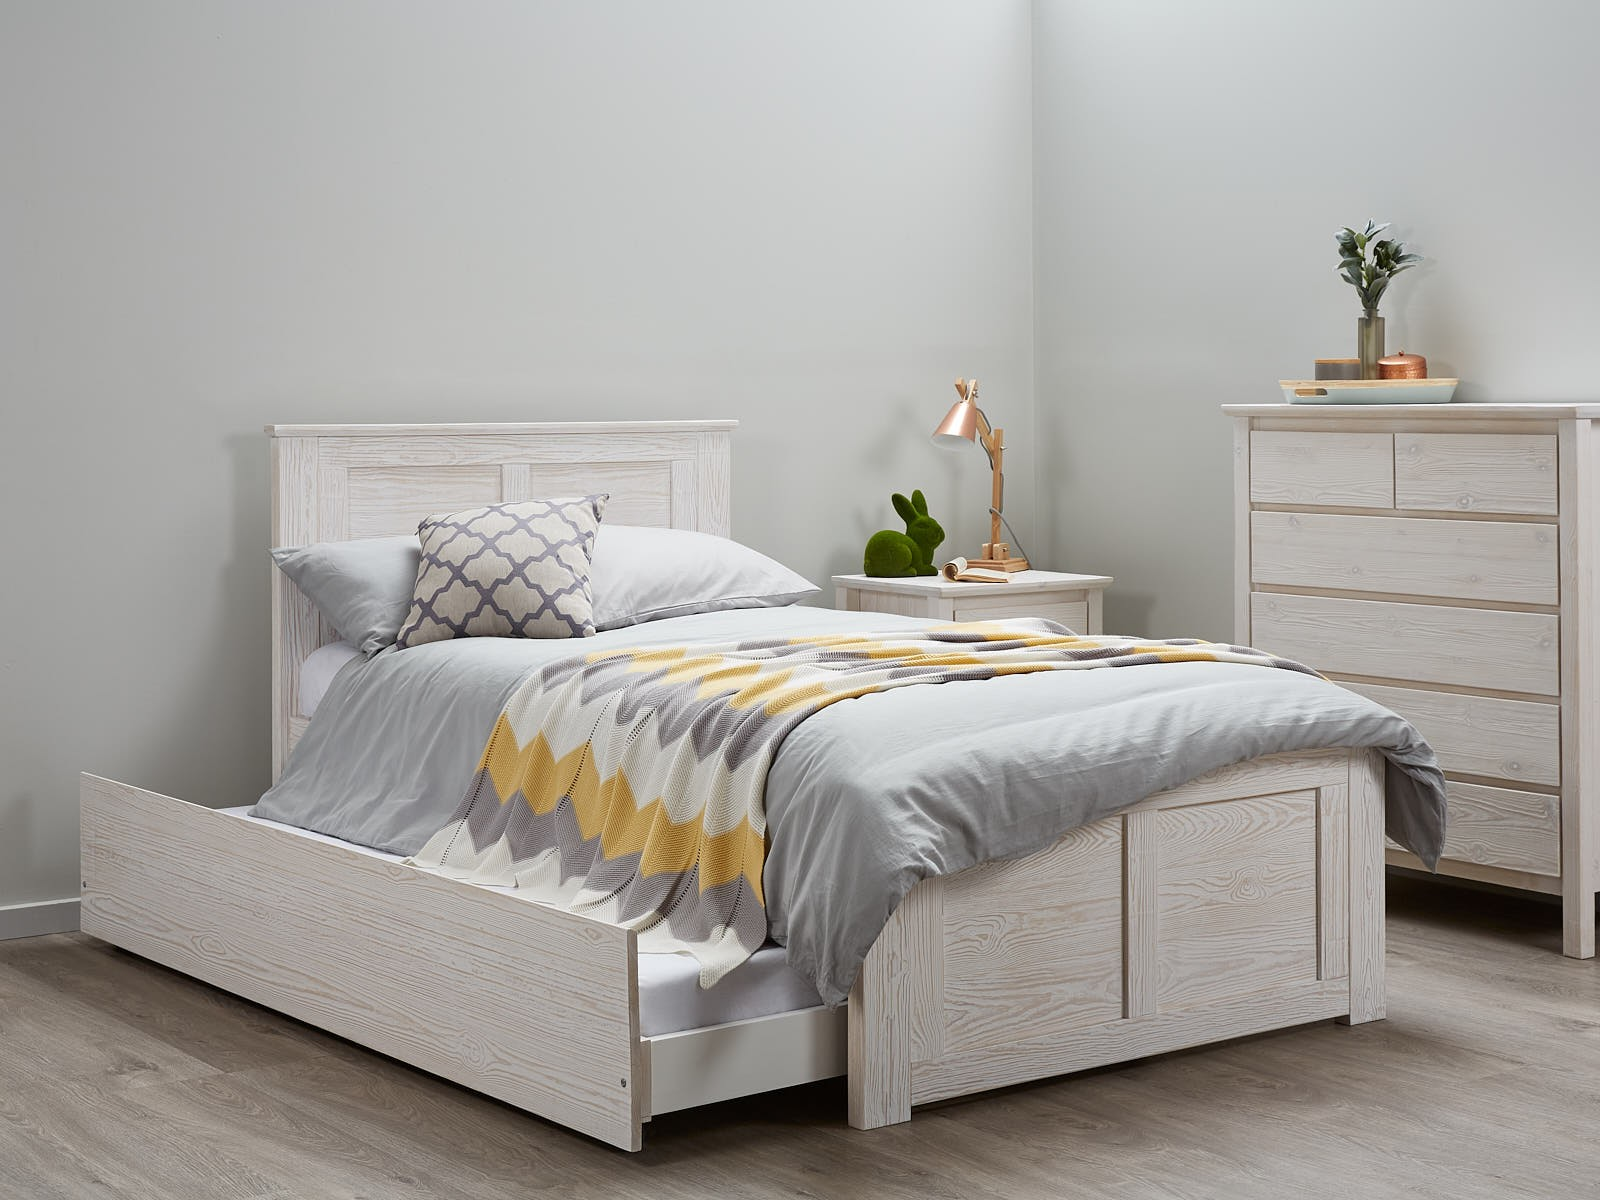 Image of: Bed Frame With Trundle Cozy